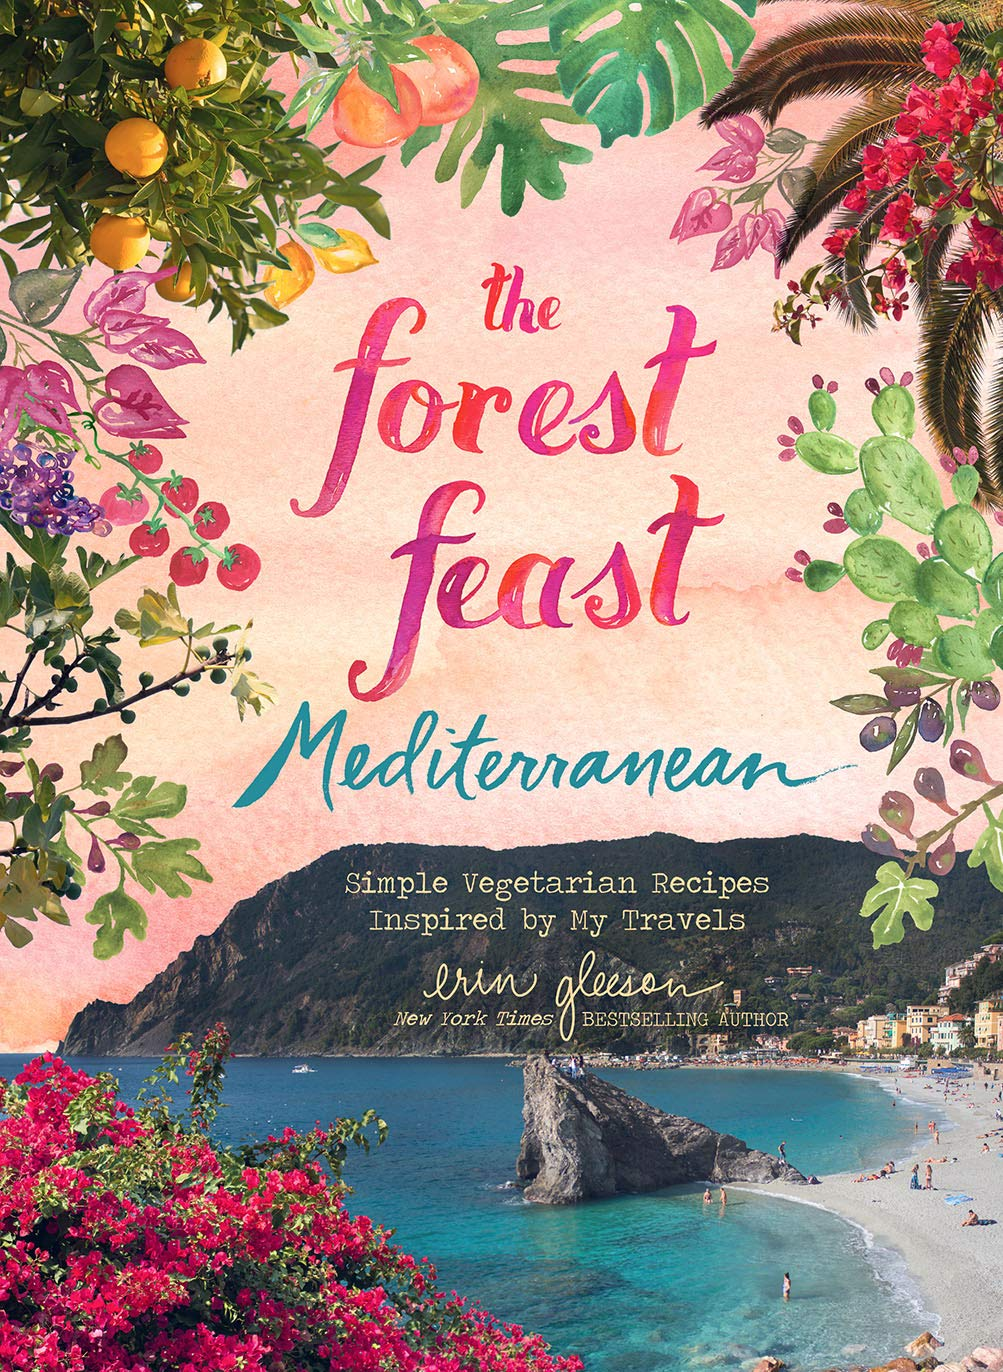 Forest Feast Mediterranean: Vegetarian Small Plates Inspired by the Mediterranean by AMERICAN WEST BOOKS